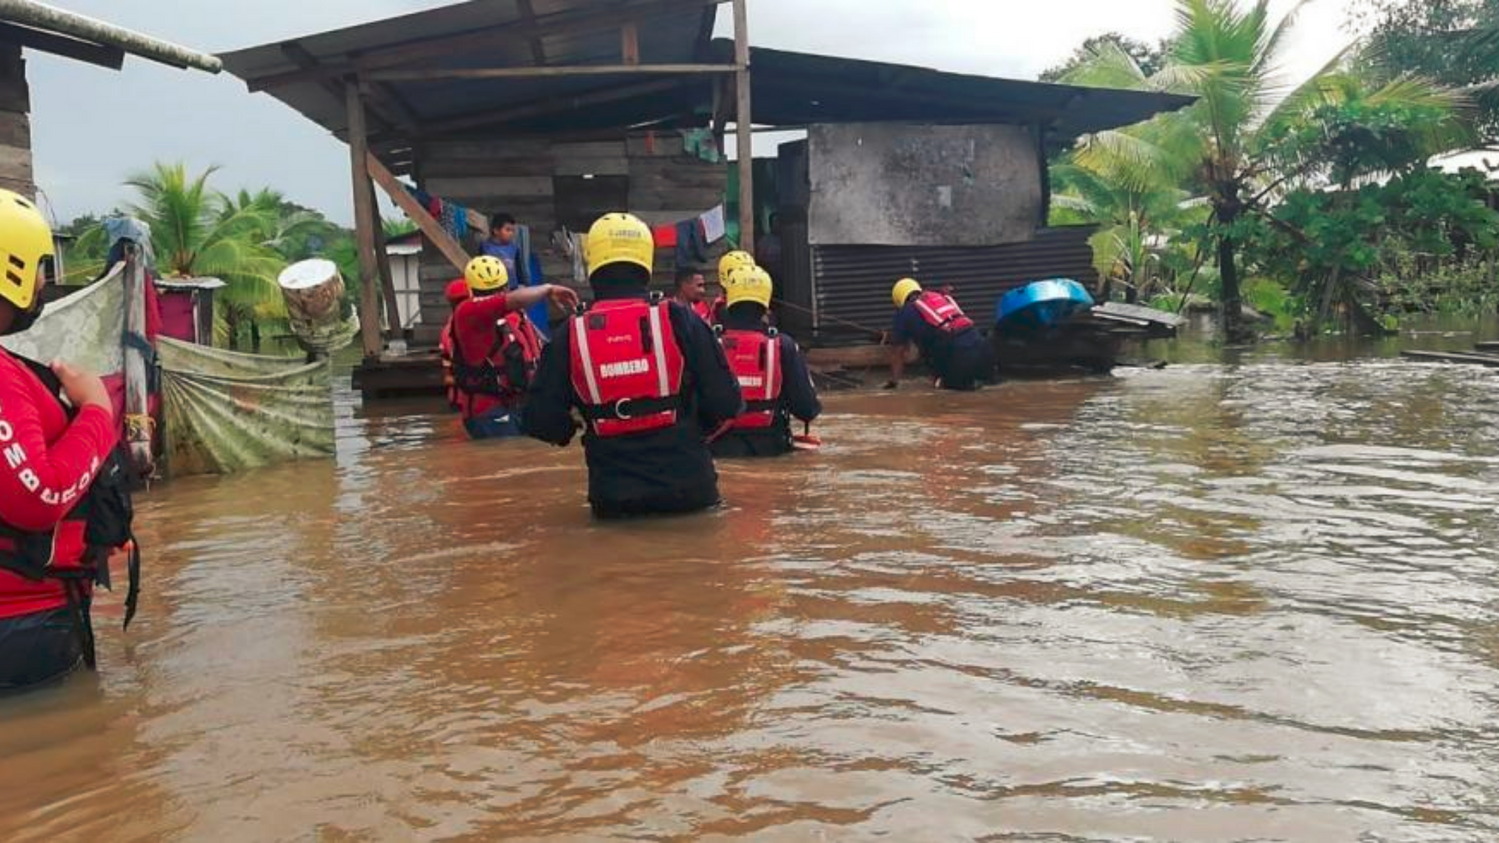 Rescue team helping people evacuated a flooded home in Panama